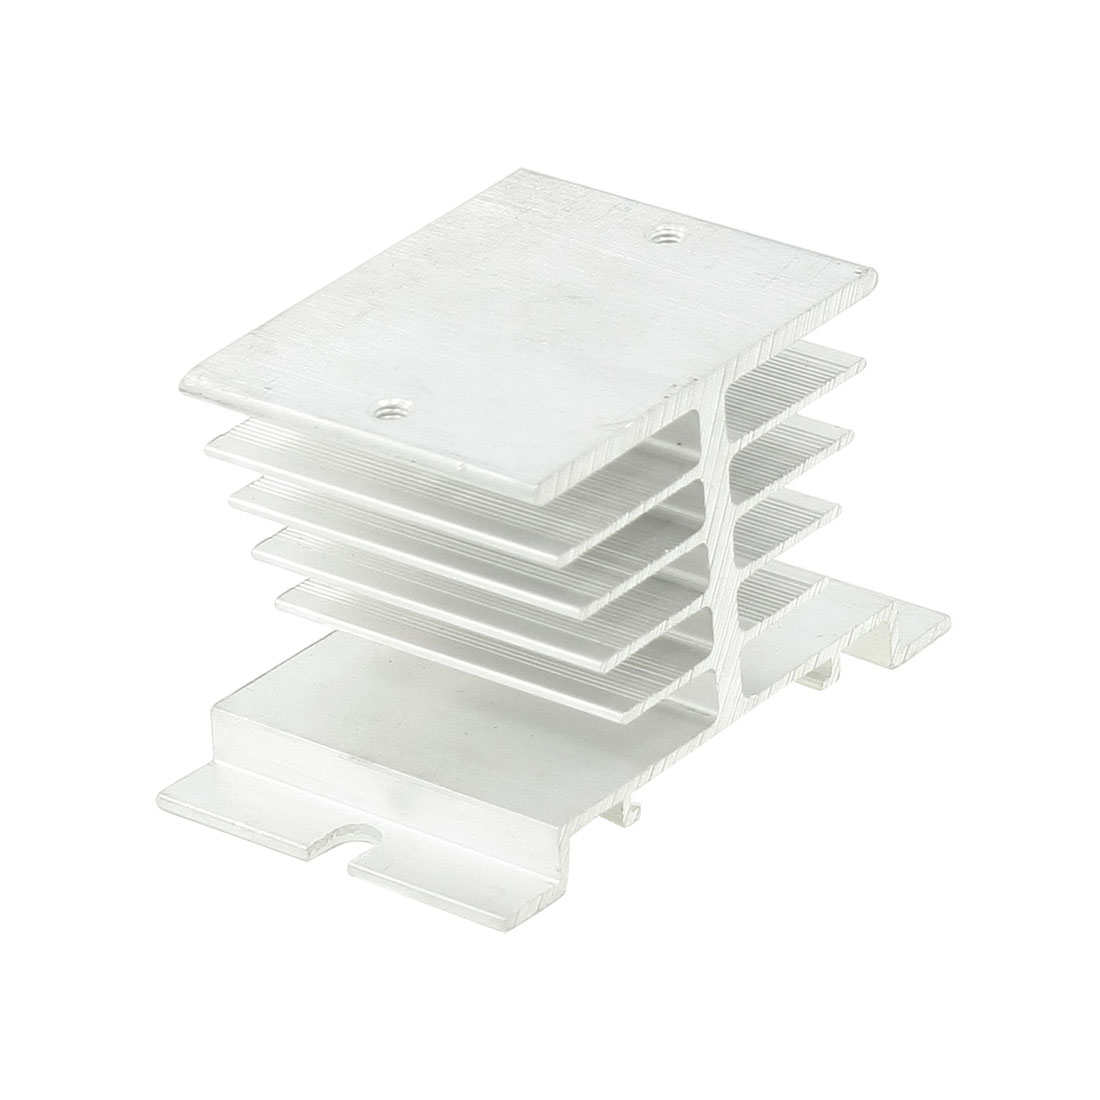 Dissipation Aluminum Heat Sink for Single Phase Solid State Relay